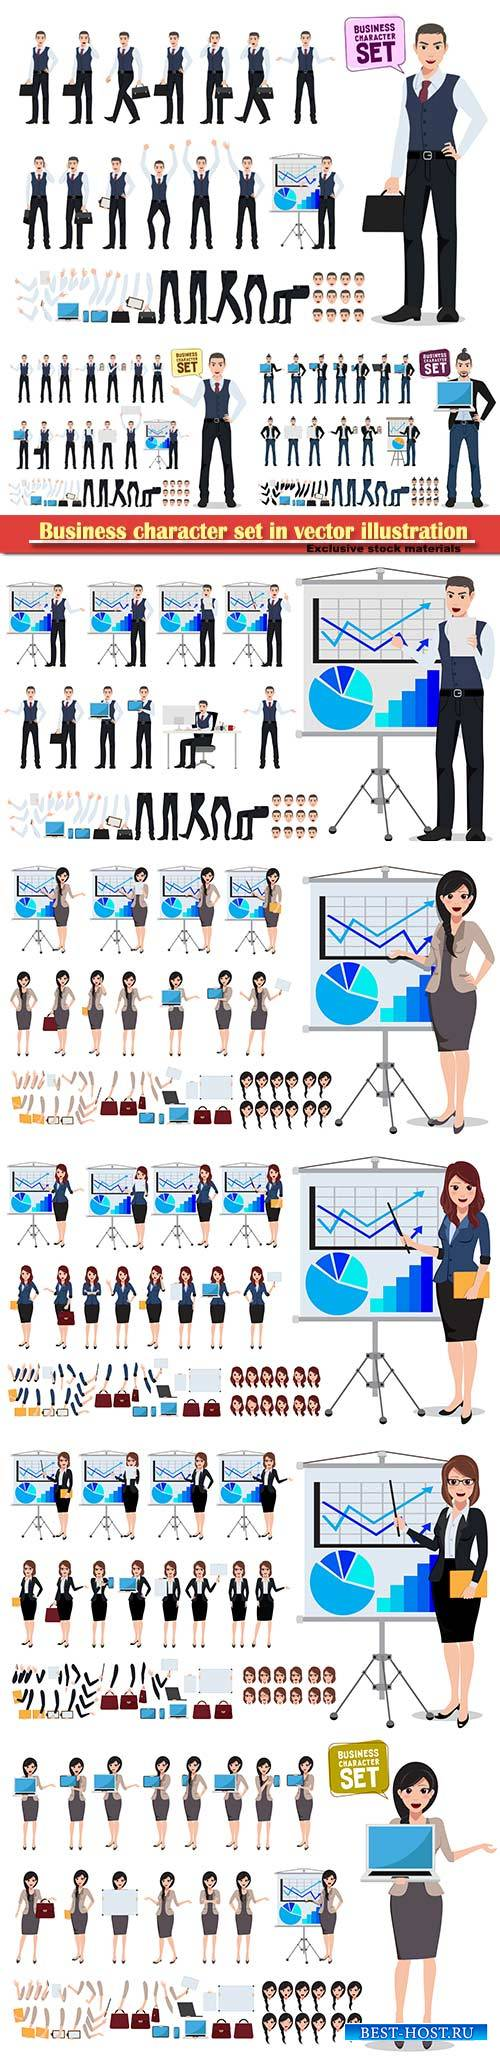 Business character set in vector illustration